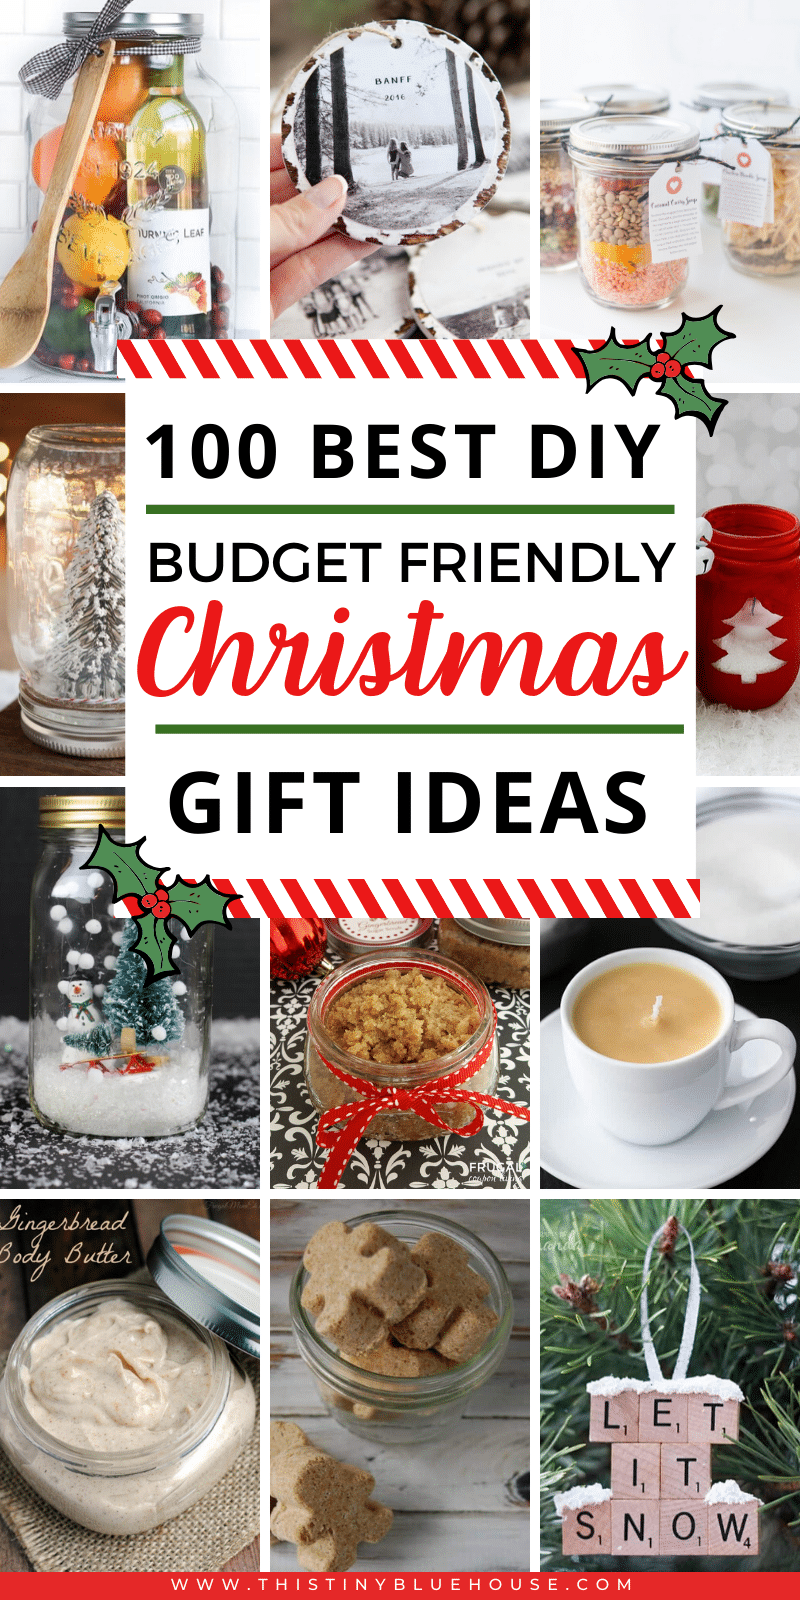 The Christmas season is quickly approaching folks and DIY Budget Friendly Christmas gifts are an incredible way to lower costs around the holidays if you're trying to stick to a budget. Here are over 100 brilliant DIY gifts you can make! #diychristmasgifts #diychristmasgiftsforfamily #diychristmasgiftsforfriends #diychristmasgiftsformen #diychristmasgiftsforkids #diychristmasgiftsformom #diychristmasgiftsinajar